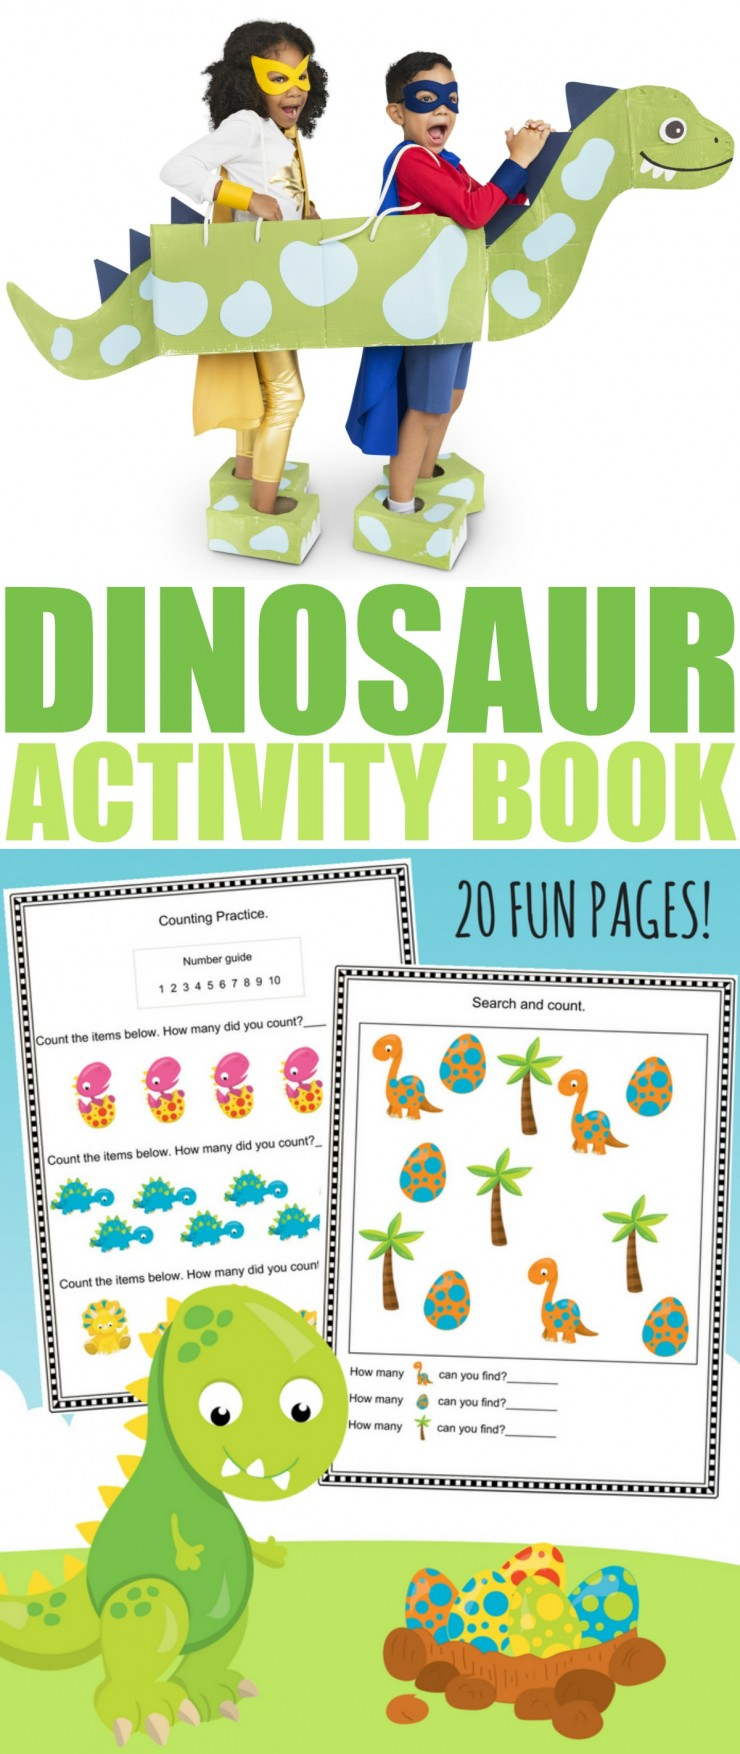 hight resolution of Free Printable Dinosaur Activity Book - Frugal Mom Eh!